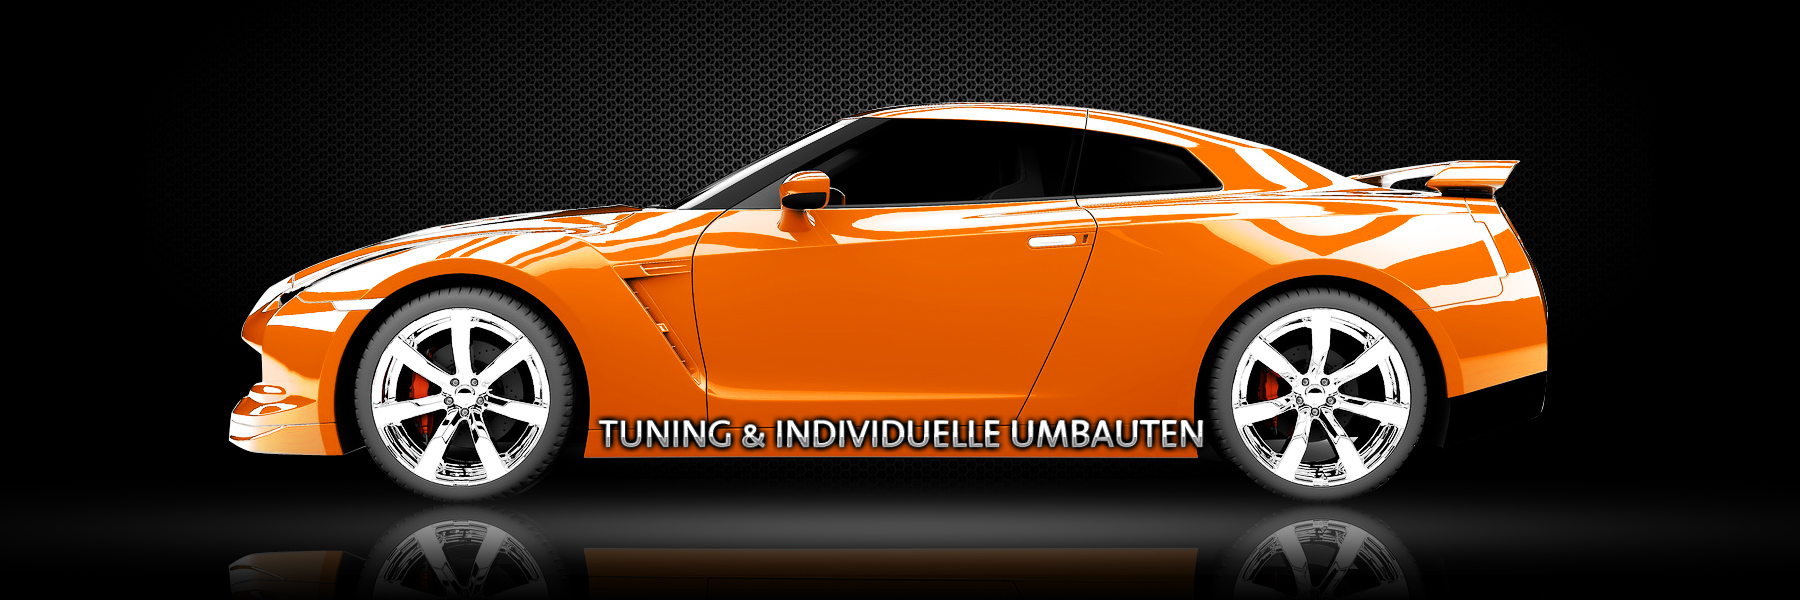 V-Unlimited Tuning